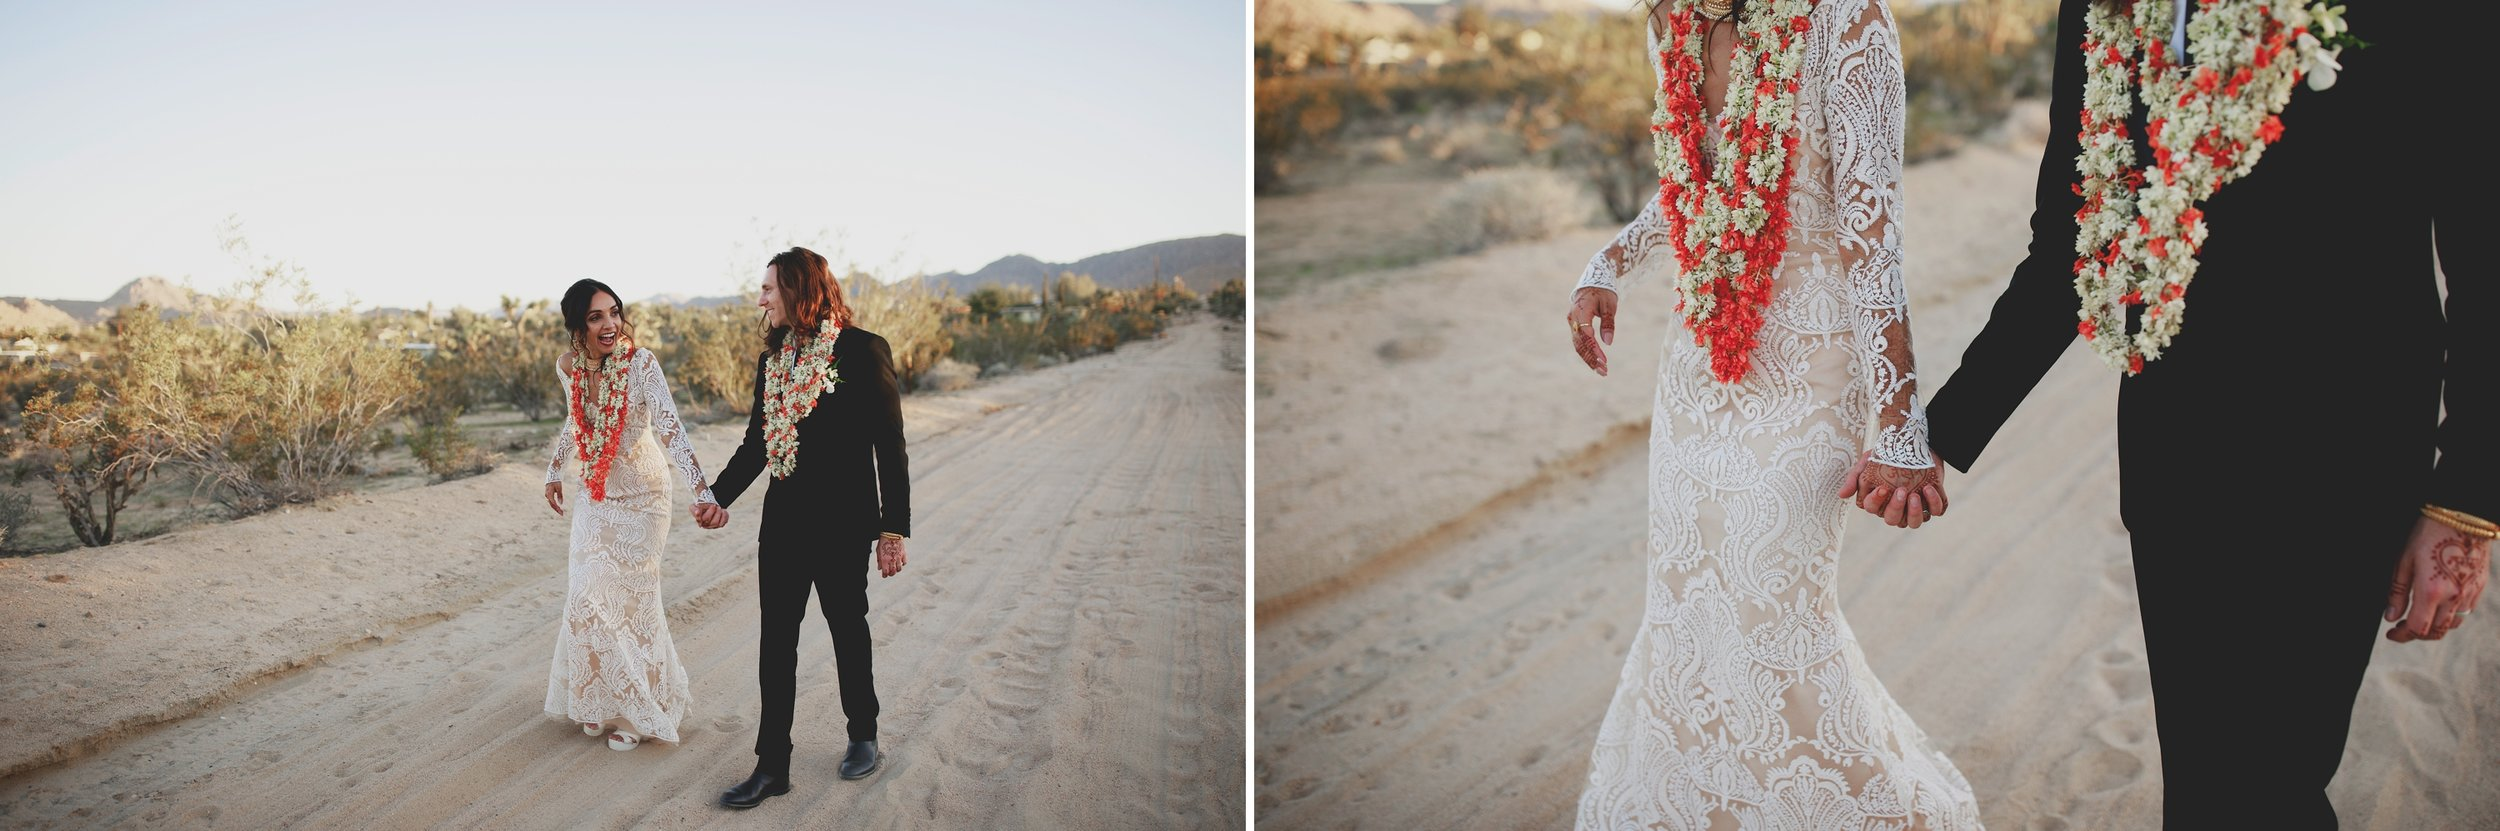 amanda_vanvels_joshua_tree_inn_wedding_129.jpg